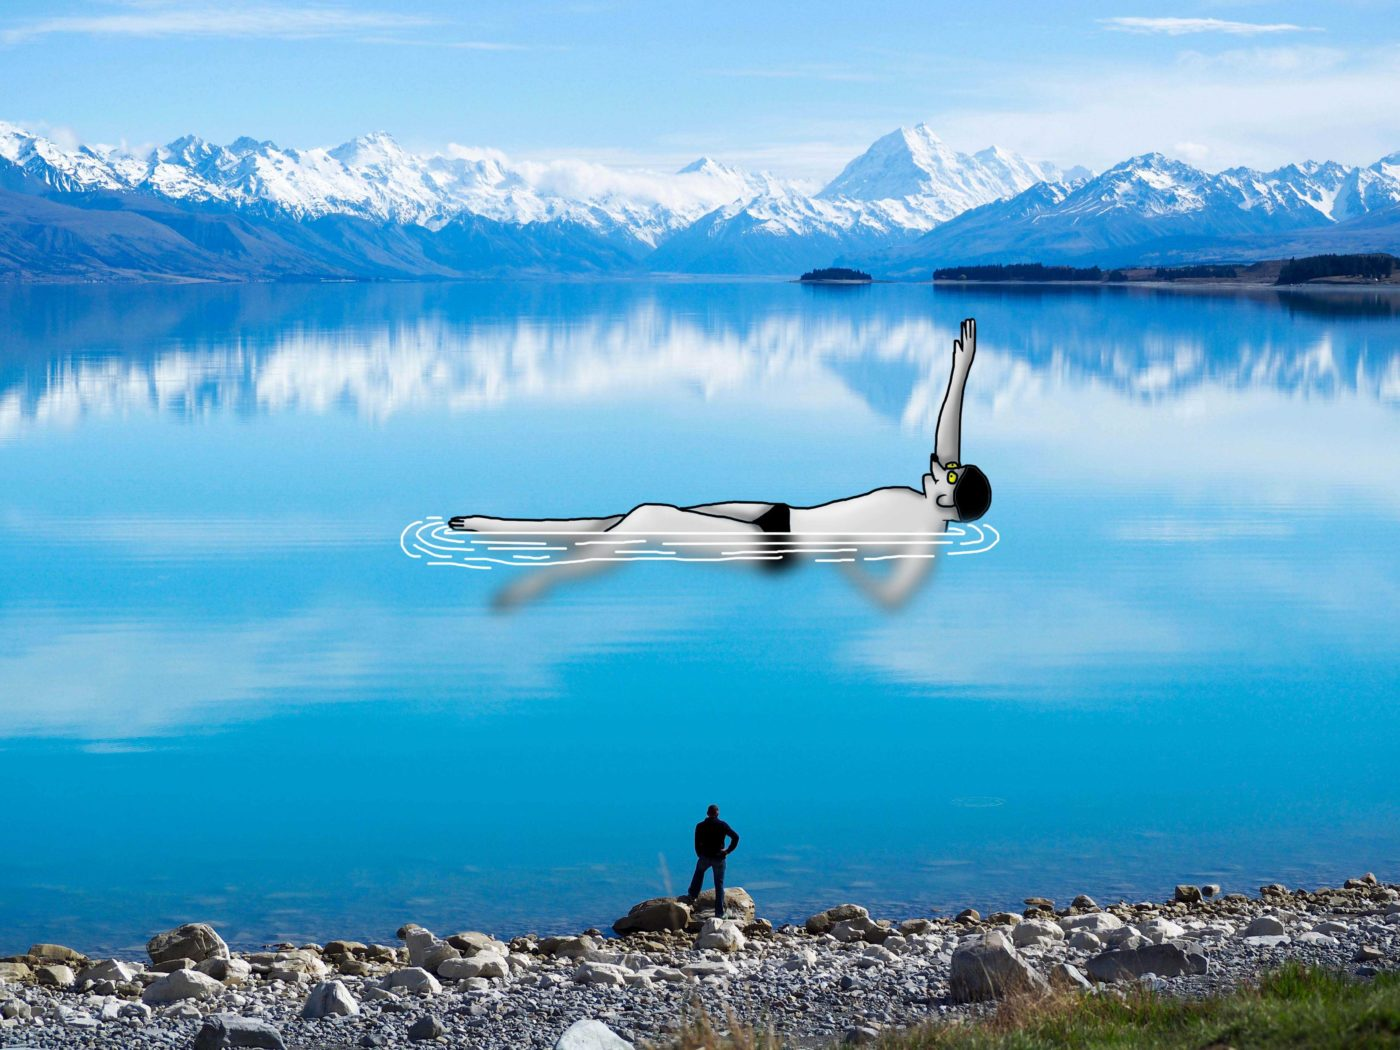 Digital drawing on Dave Daves photo. Lake Pukaki, New Zealand